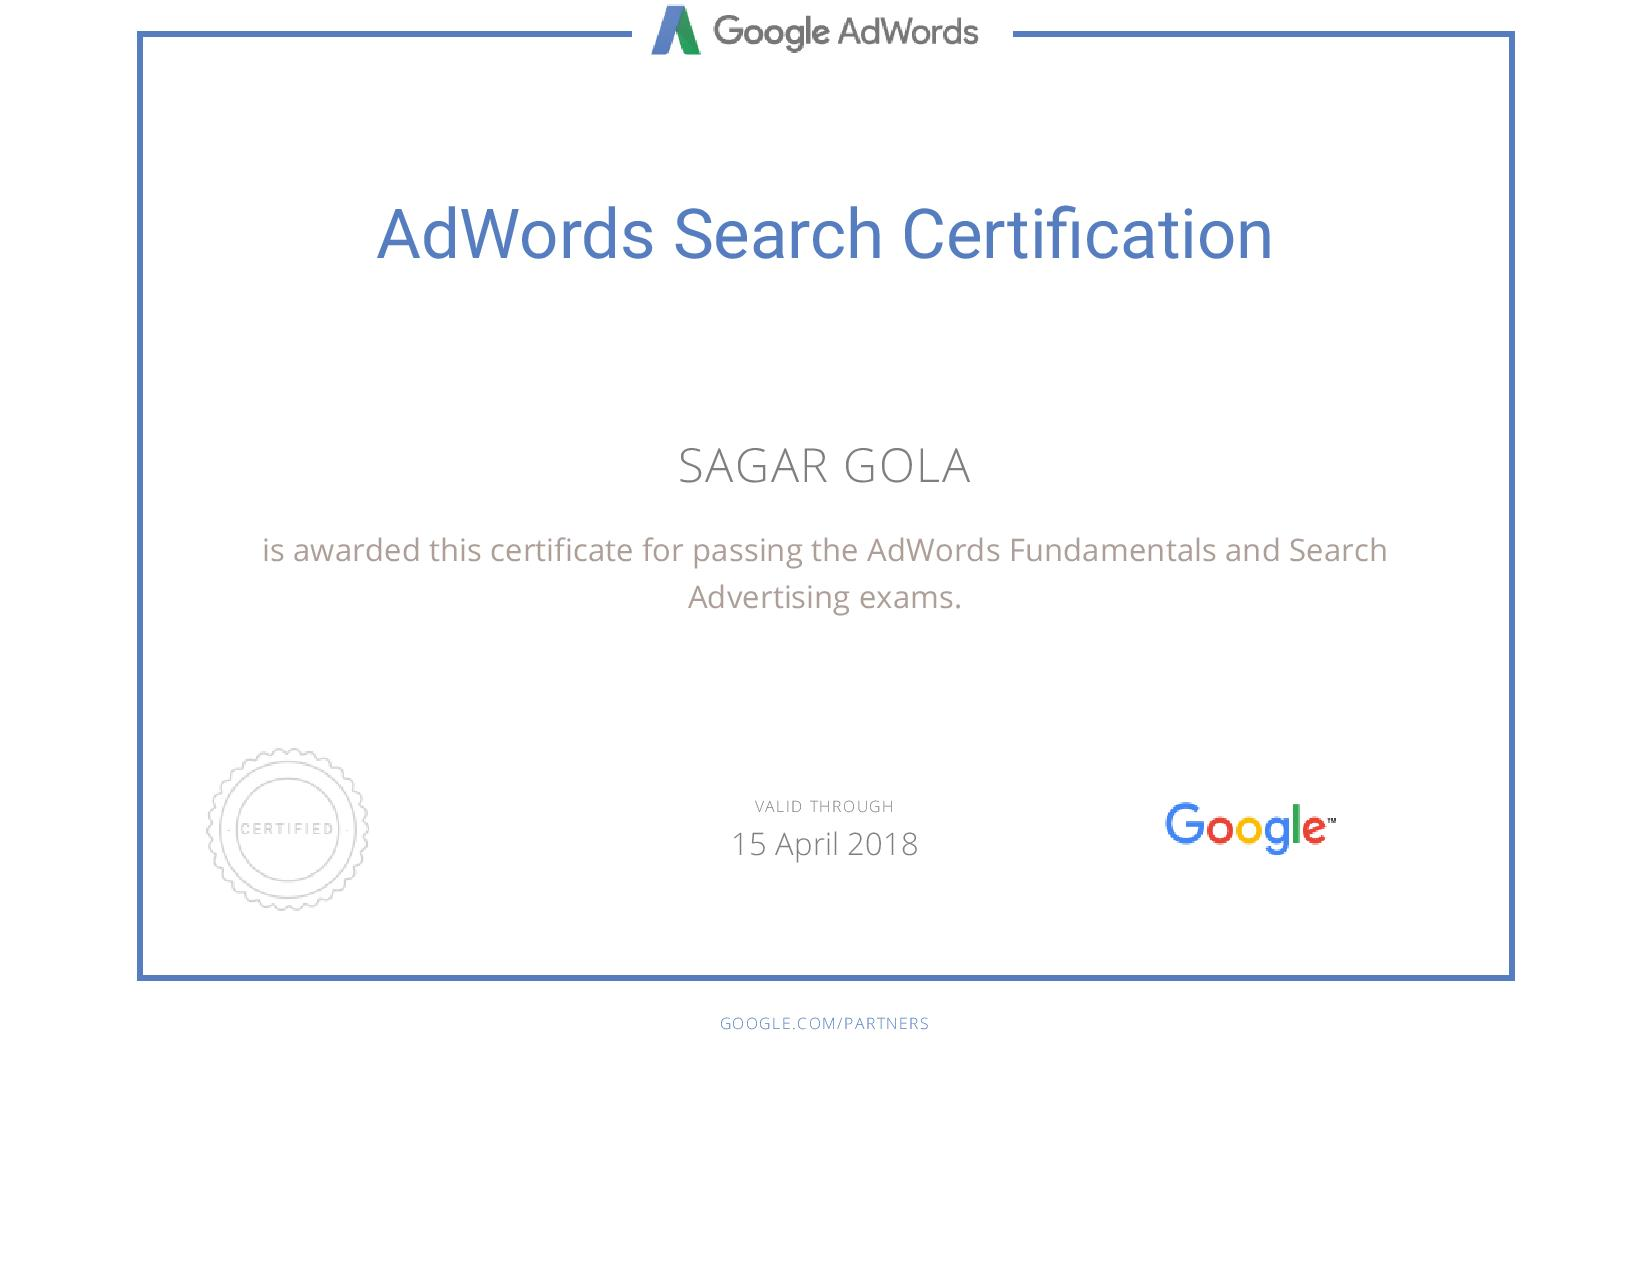 Google adwords search advertising exam answers sheet 2018 sagar gola fandeluxe Gallery